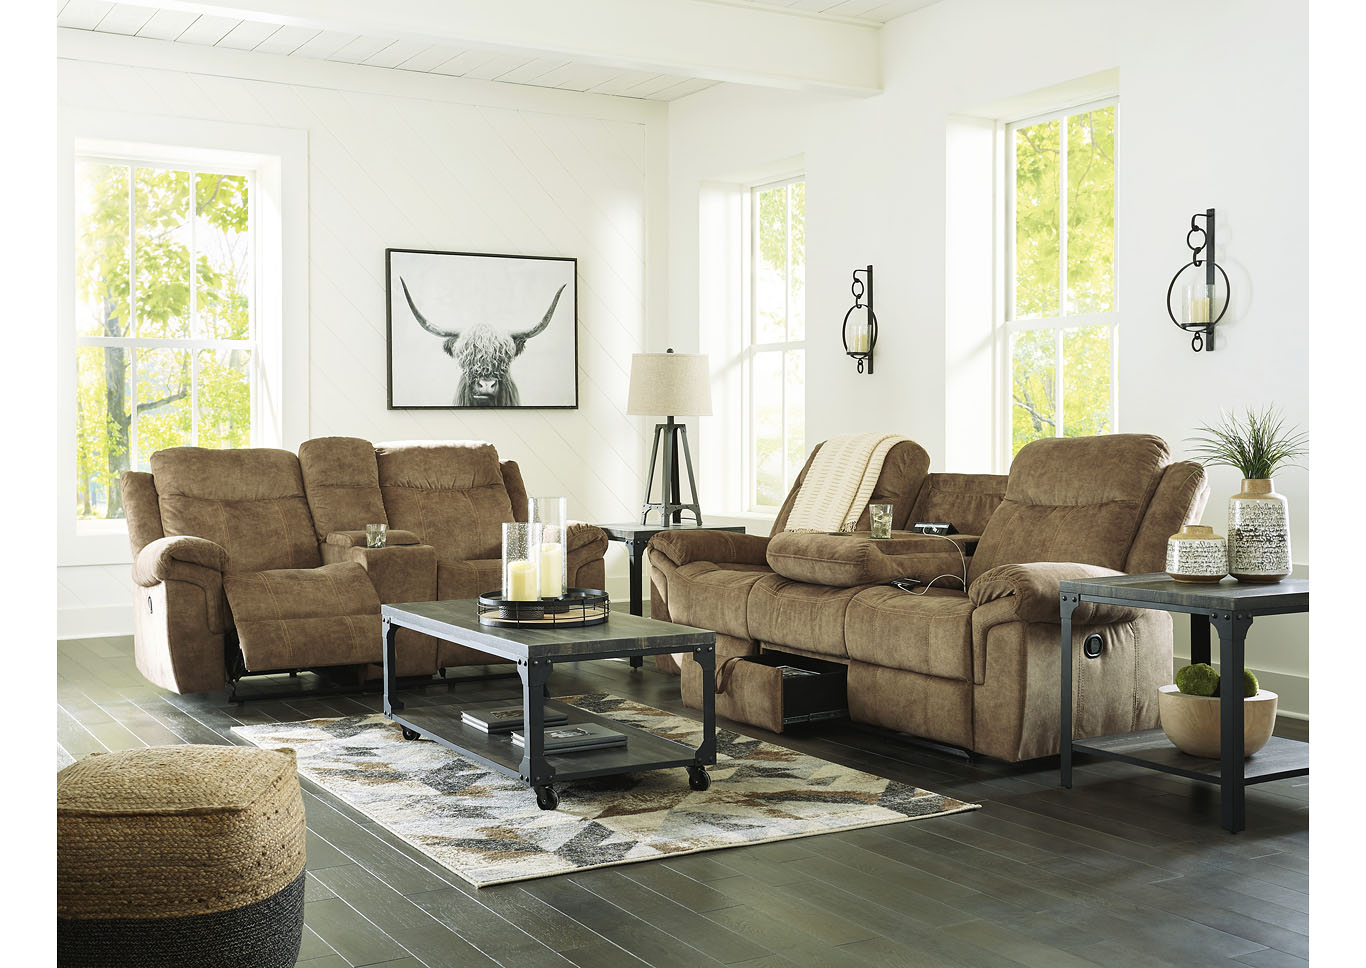 Huddle-Up Nutmeg Reclining Sofa and Loveseat w/Console and Drop Down Table,Signature Design By Ashley